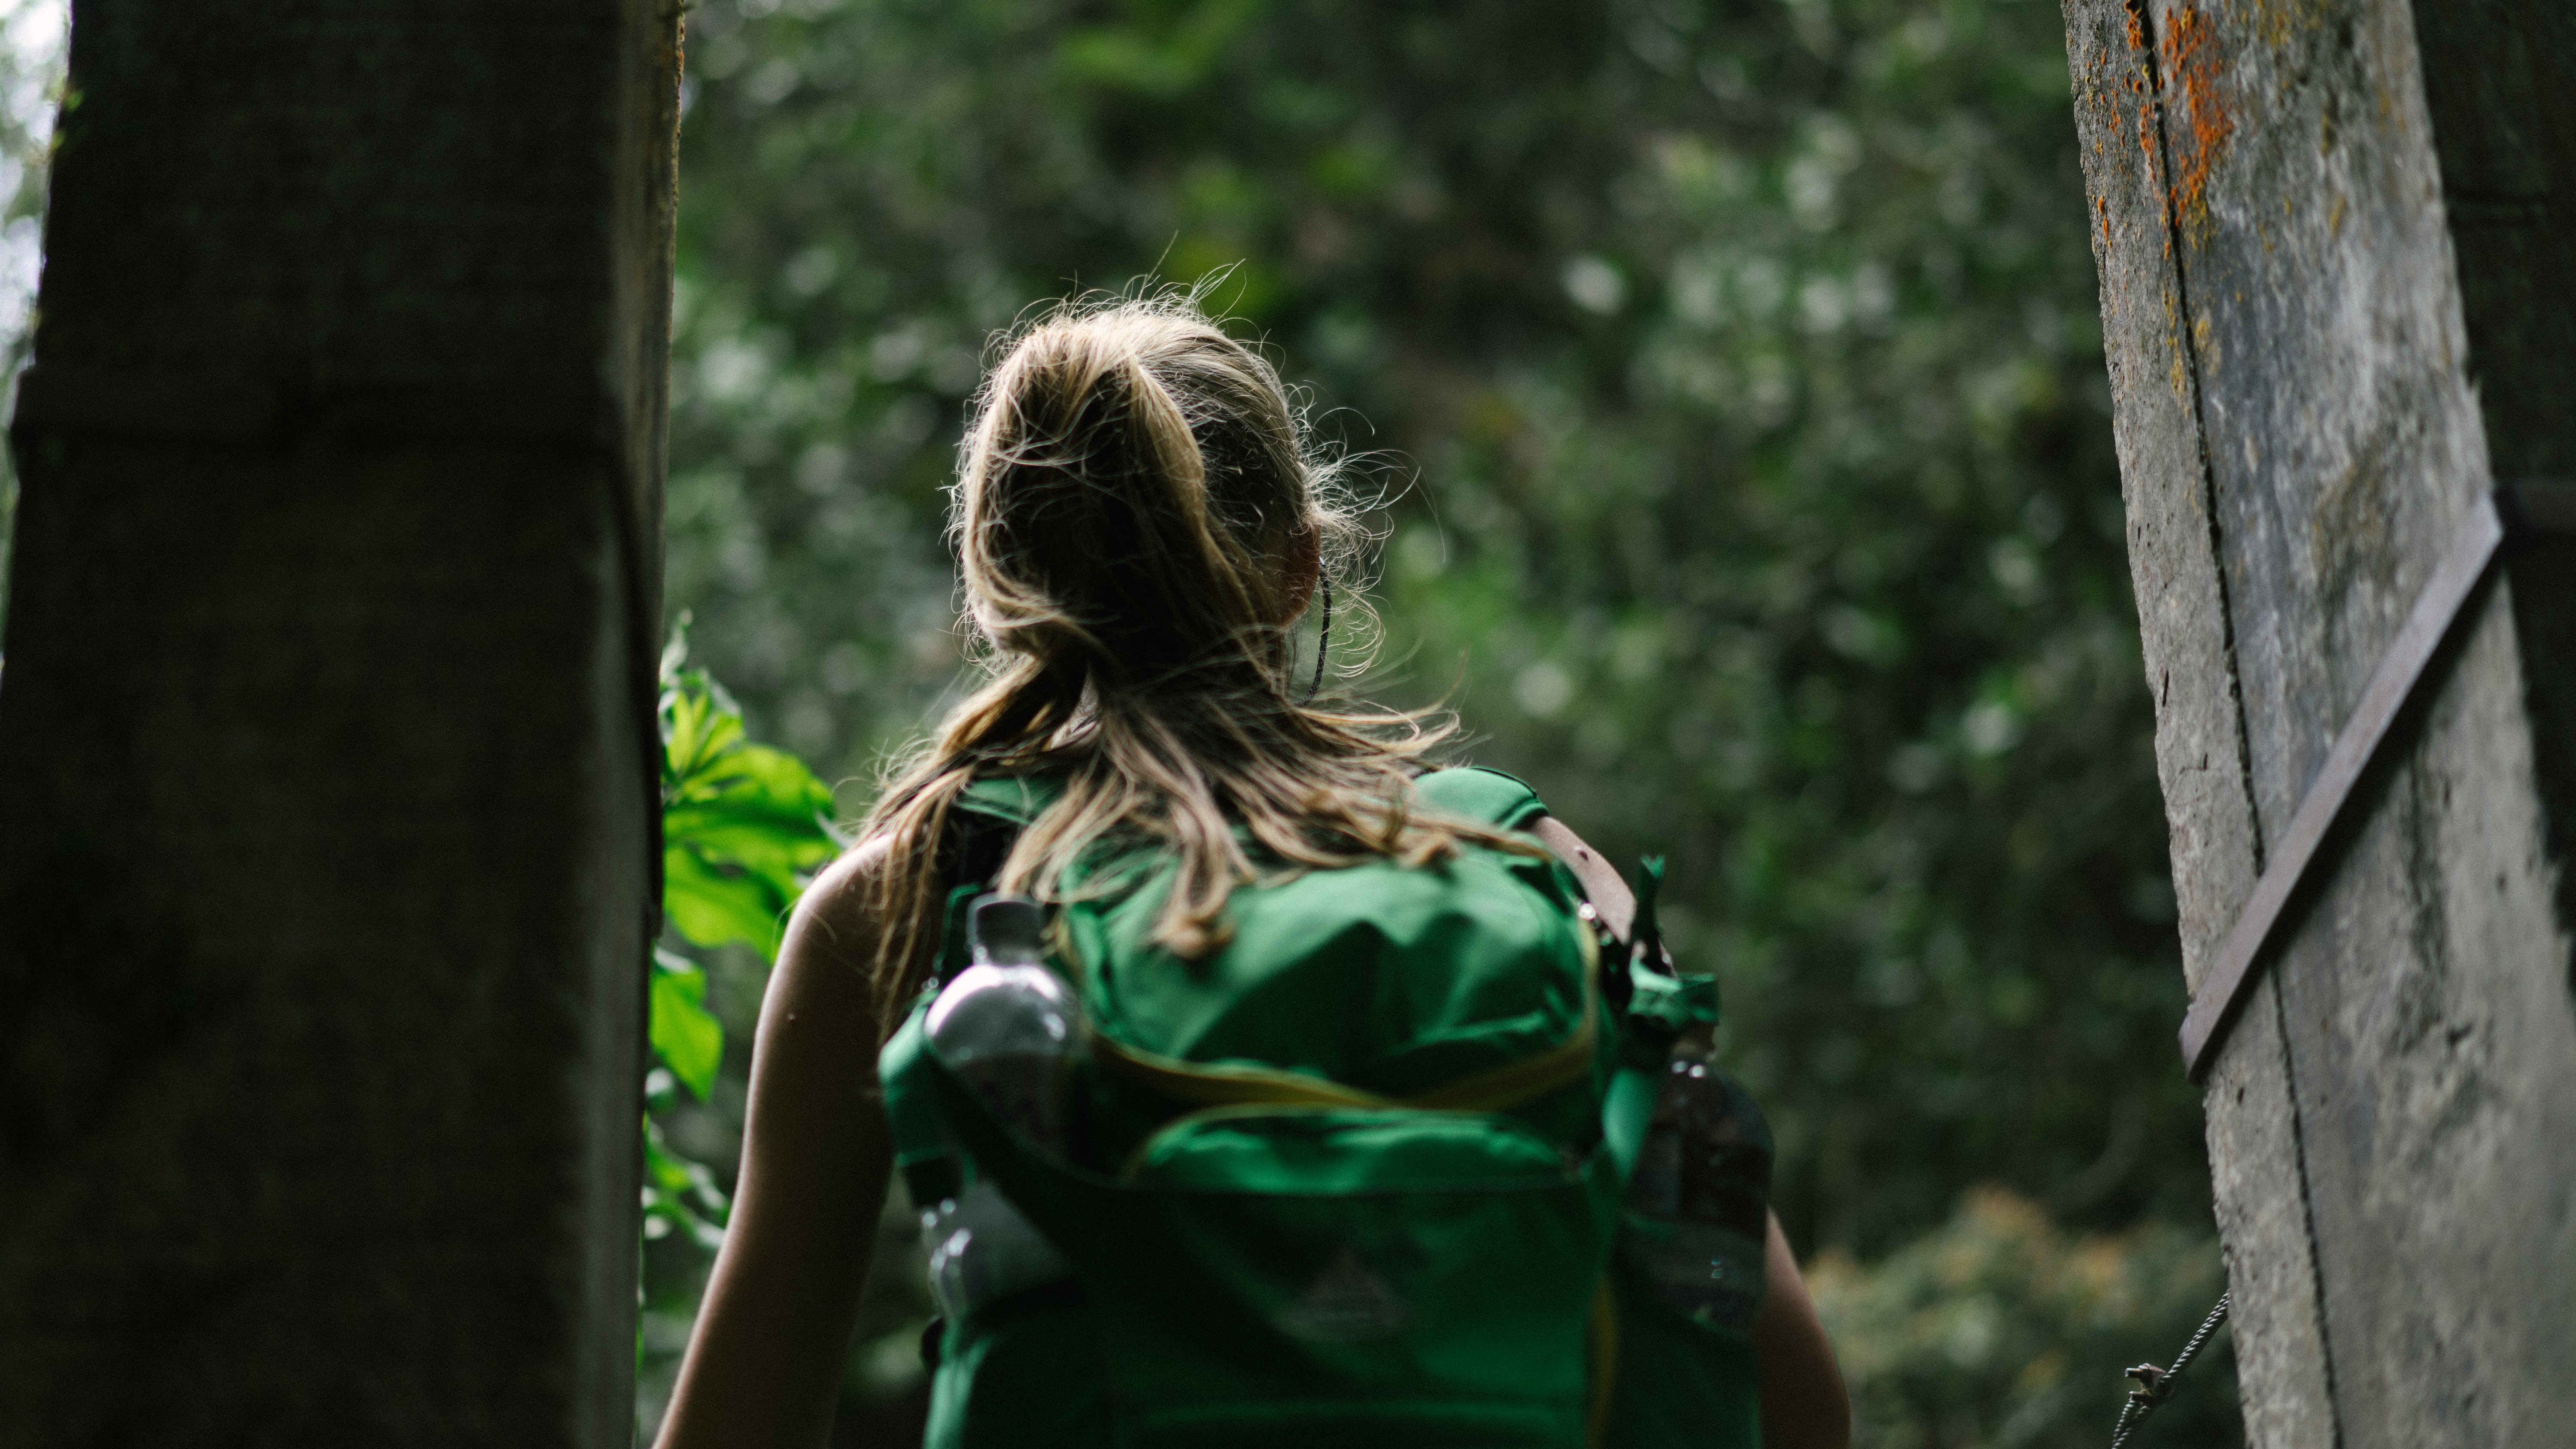 A woman with a ponytail, green backpack, and water bottle walks outside through wood doors